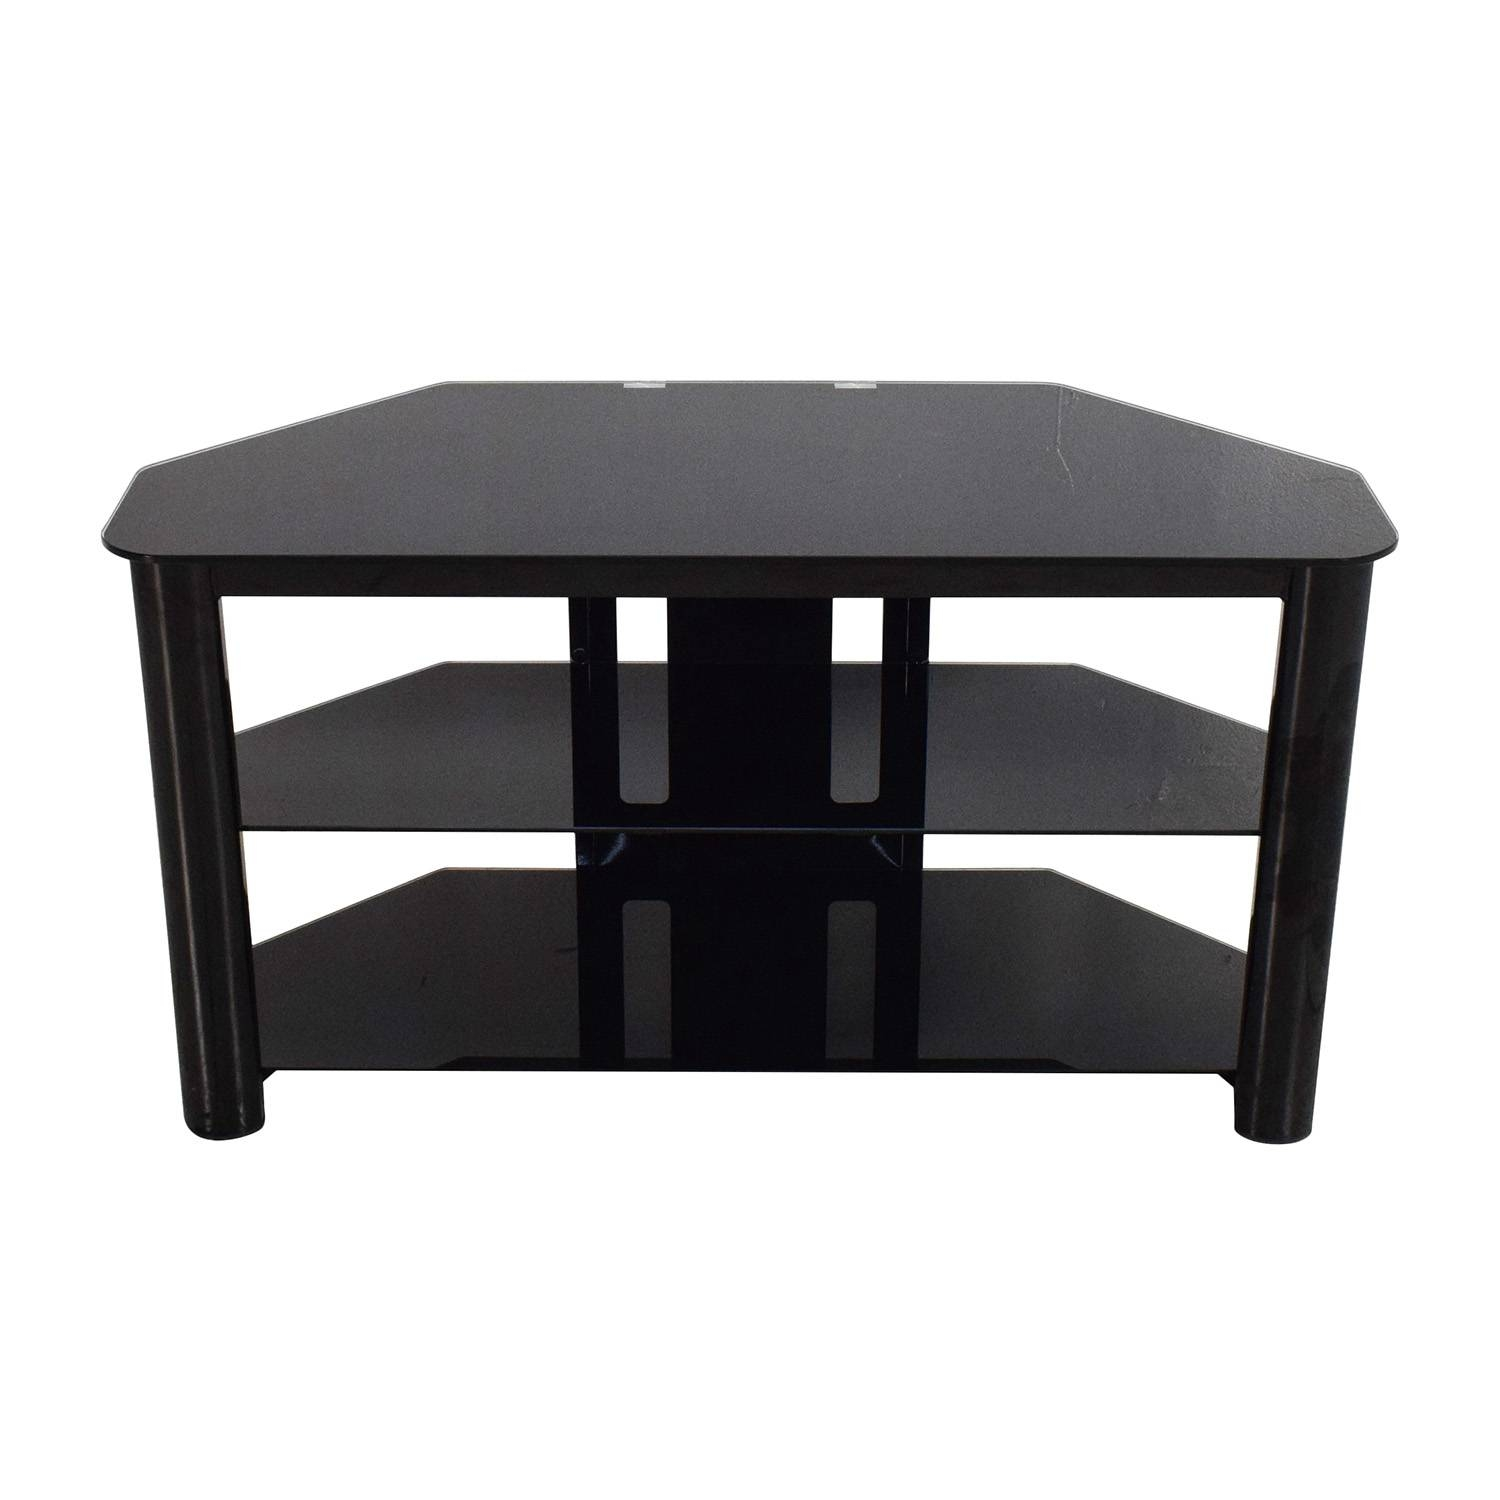 61% Off   Best Buy Best Buy Black Glass Tv Stand / Storage Pertaining To Black Glass Tv Stands (Photo 5 of 15)